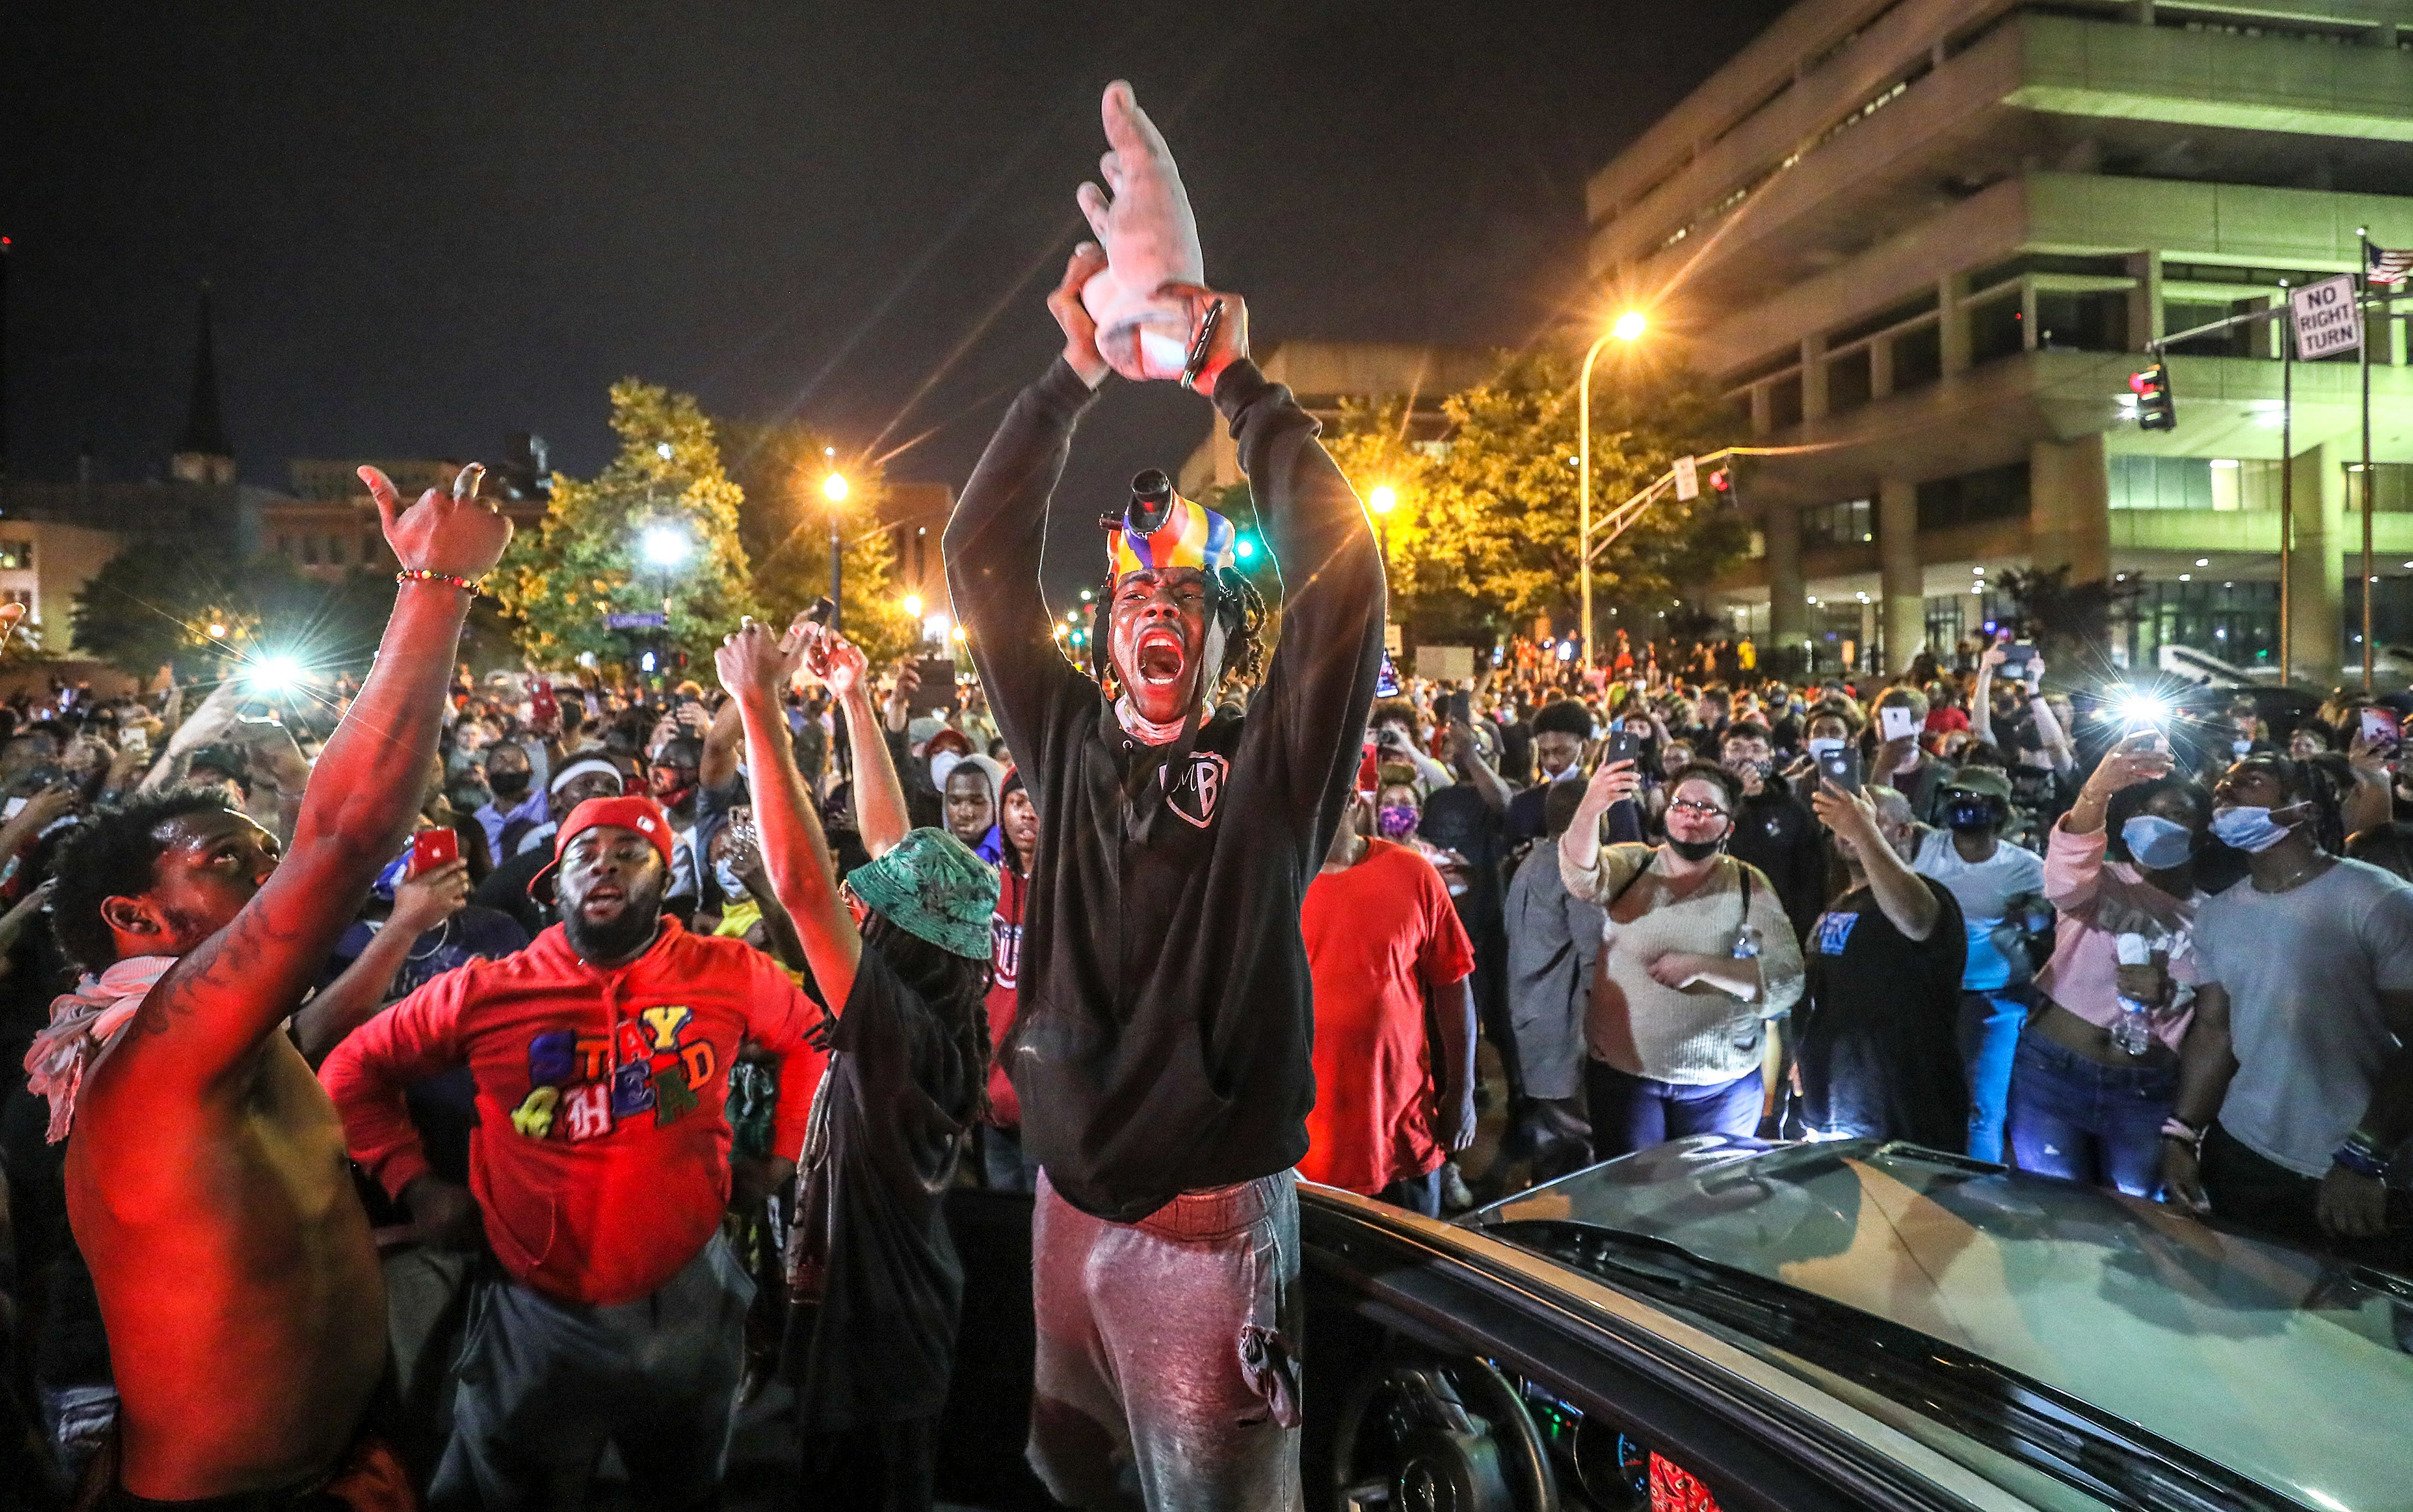 A protester holds up the hand of King Louis XVI after it was torn from the statue during a demonstration on Thursday, May 28, 2020. Louisville broke into protests following the murder of Breonna Taylor.